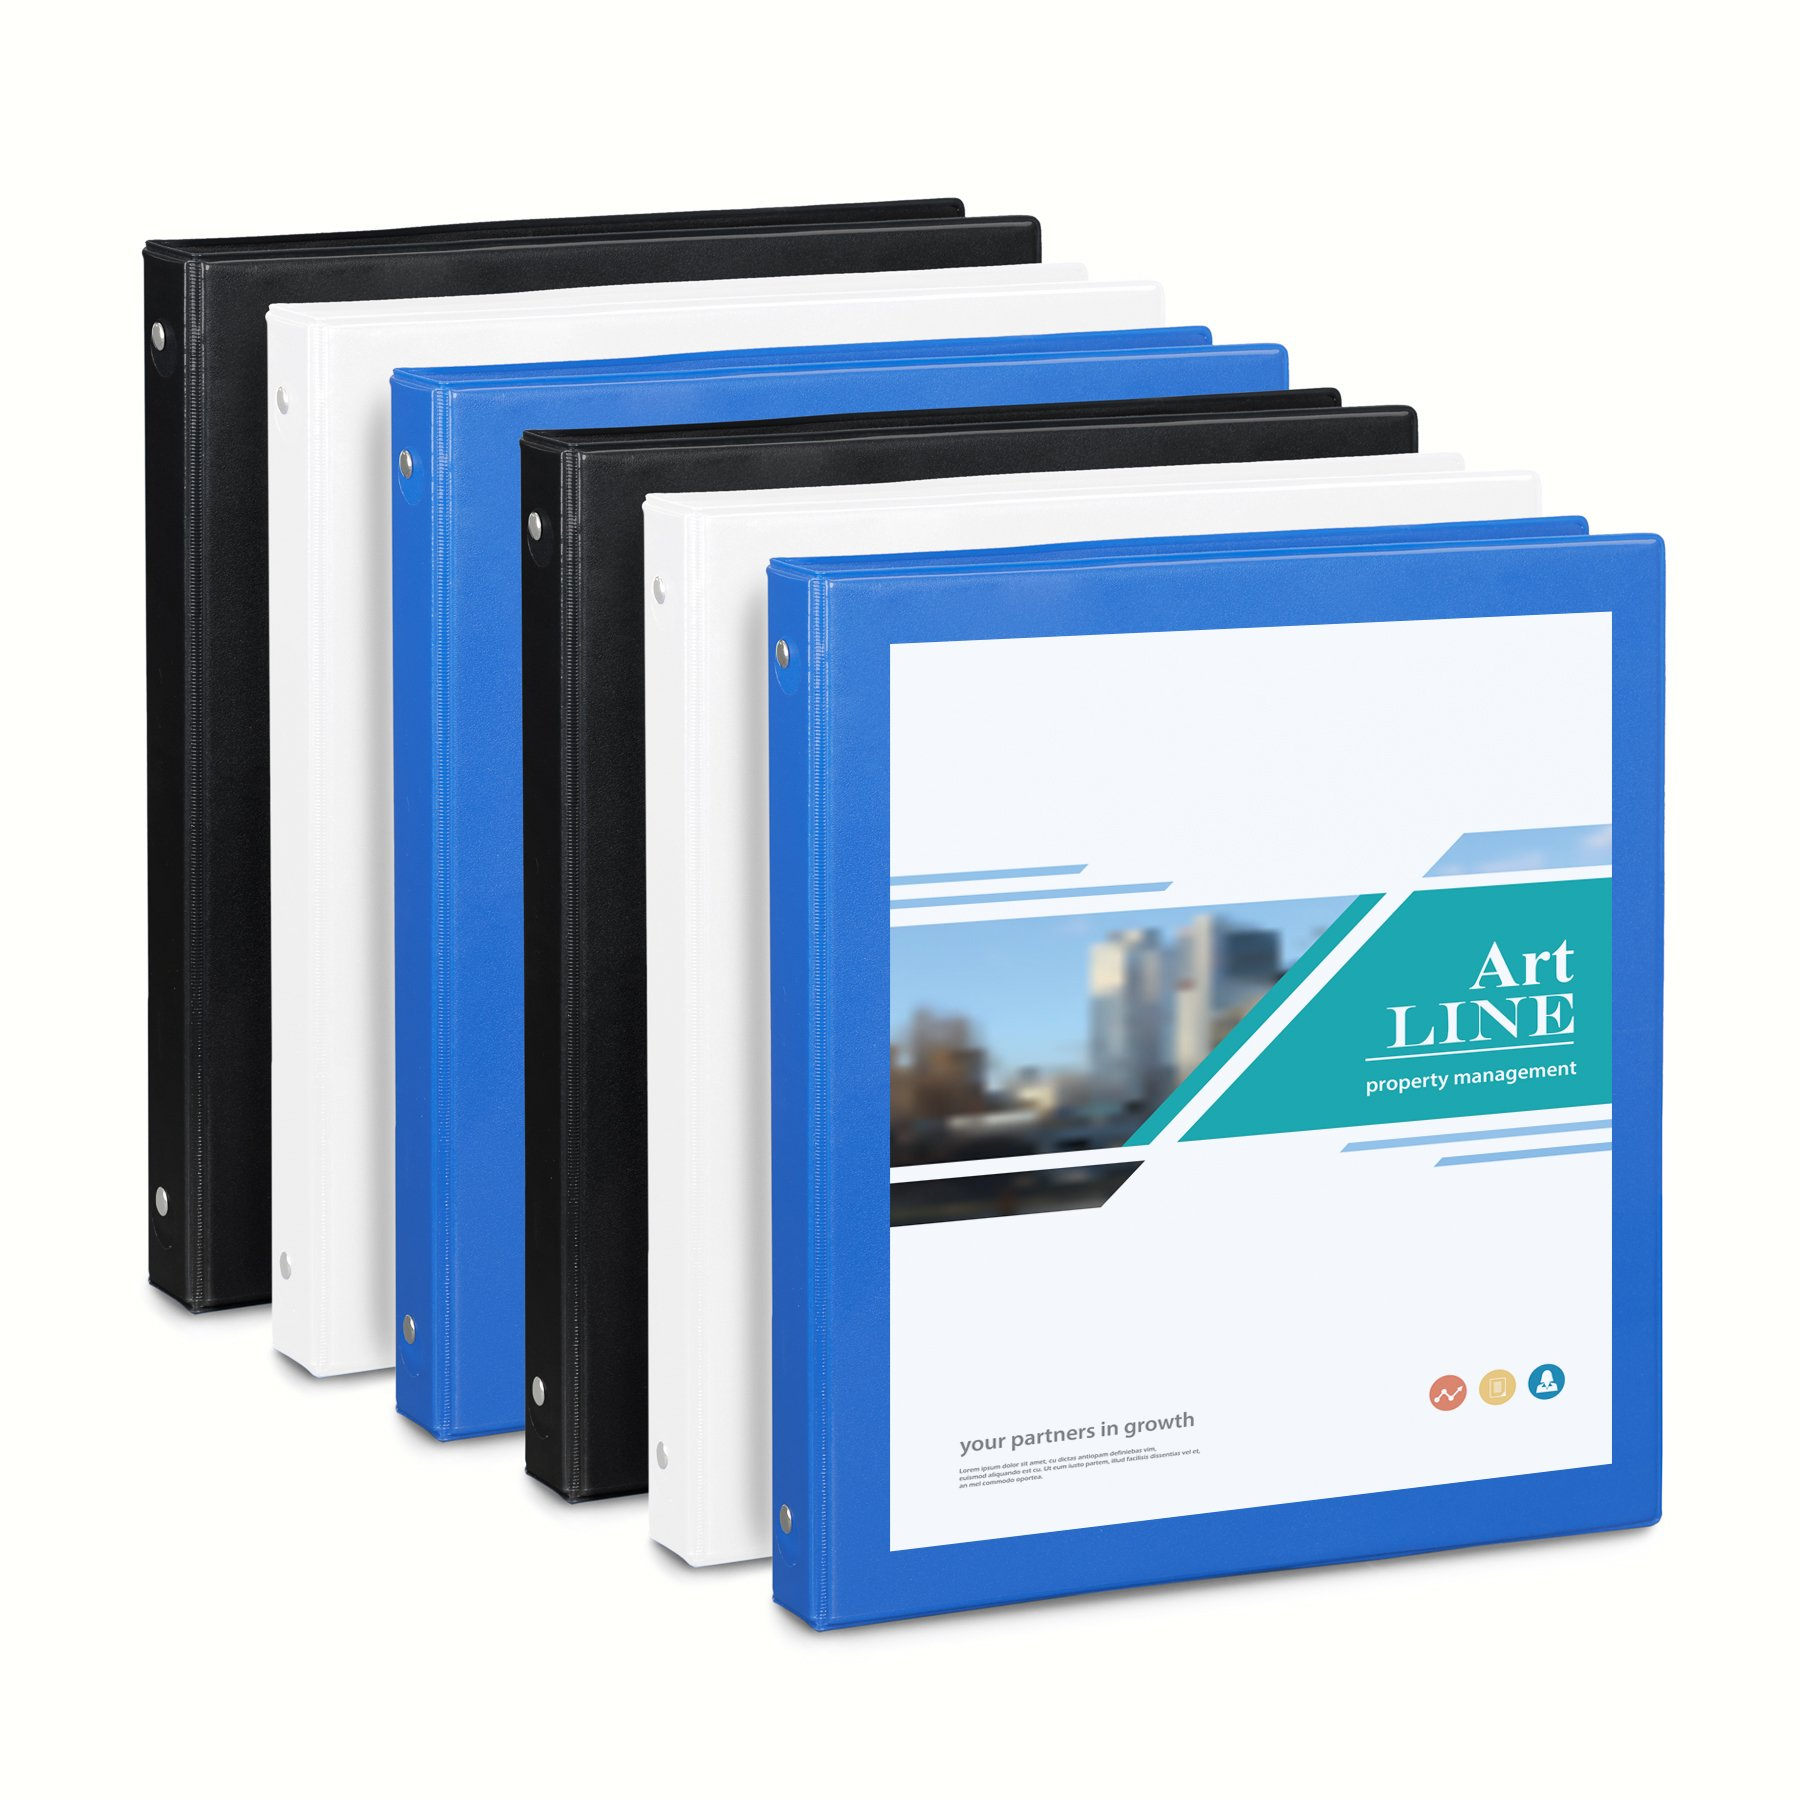 Blue Summit Supplies 6 Pack of 1 inch 3-Ring Binders, Assorted Colors, White, Blue, Black, Clear Cover Binders for Home, Office, and School, 8 1/2 inch x 11 inch Paper, Value Multi Pack